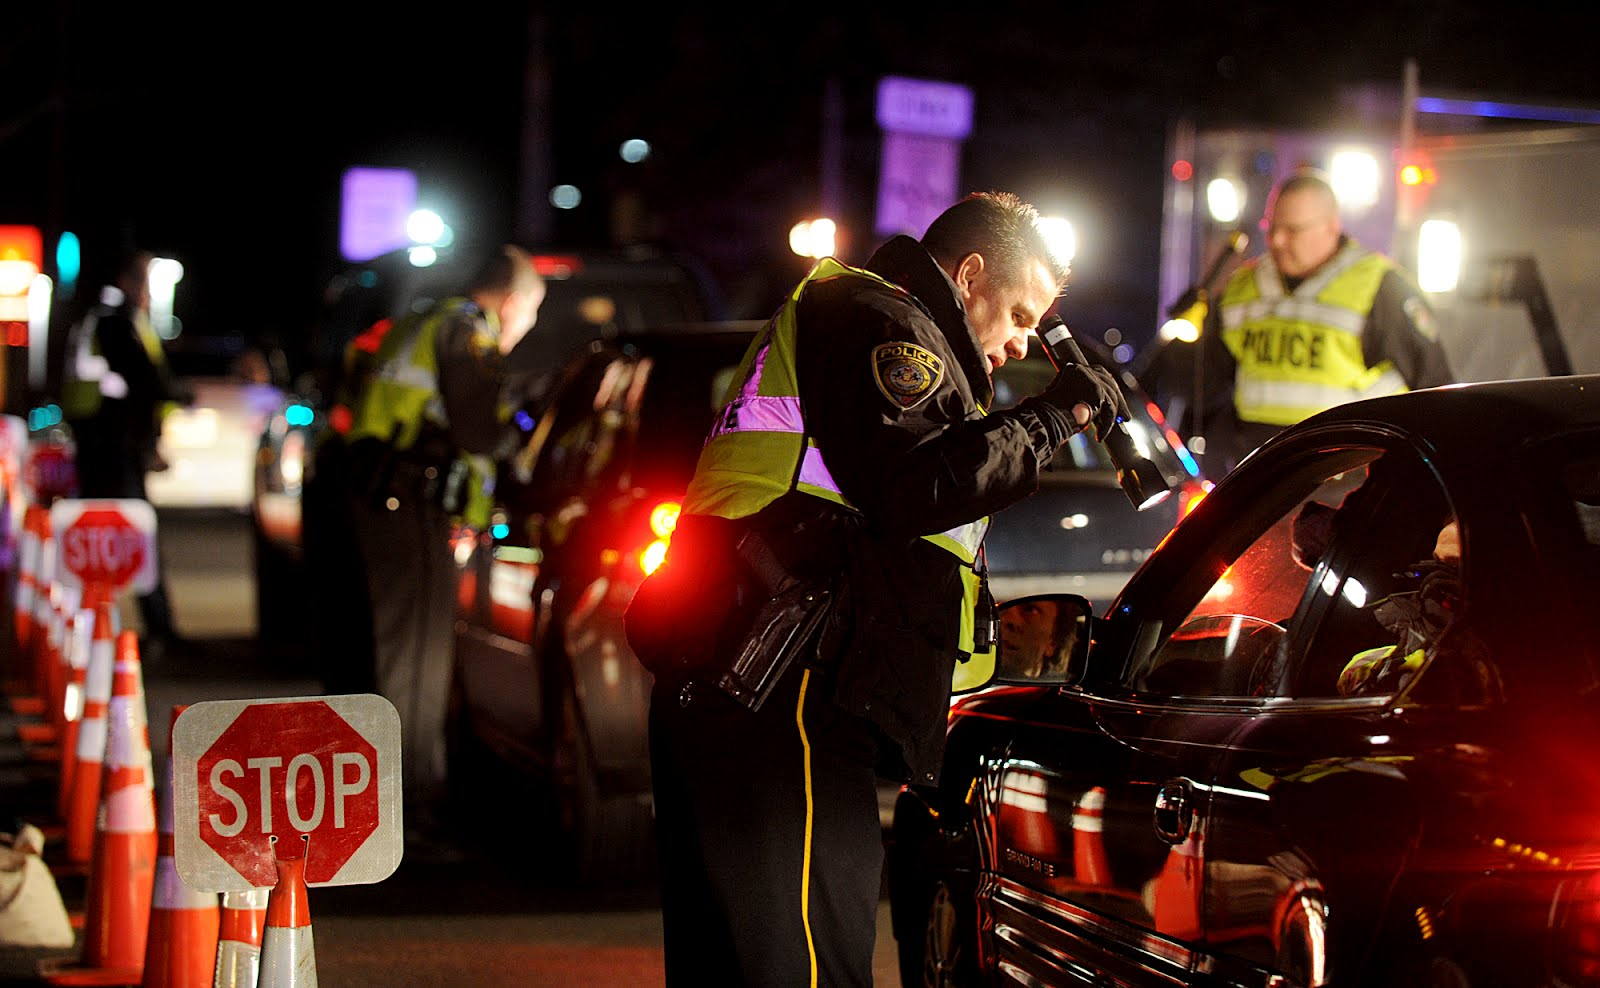 How to Get Through a DUI Checkpoint